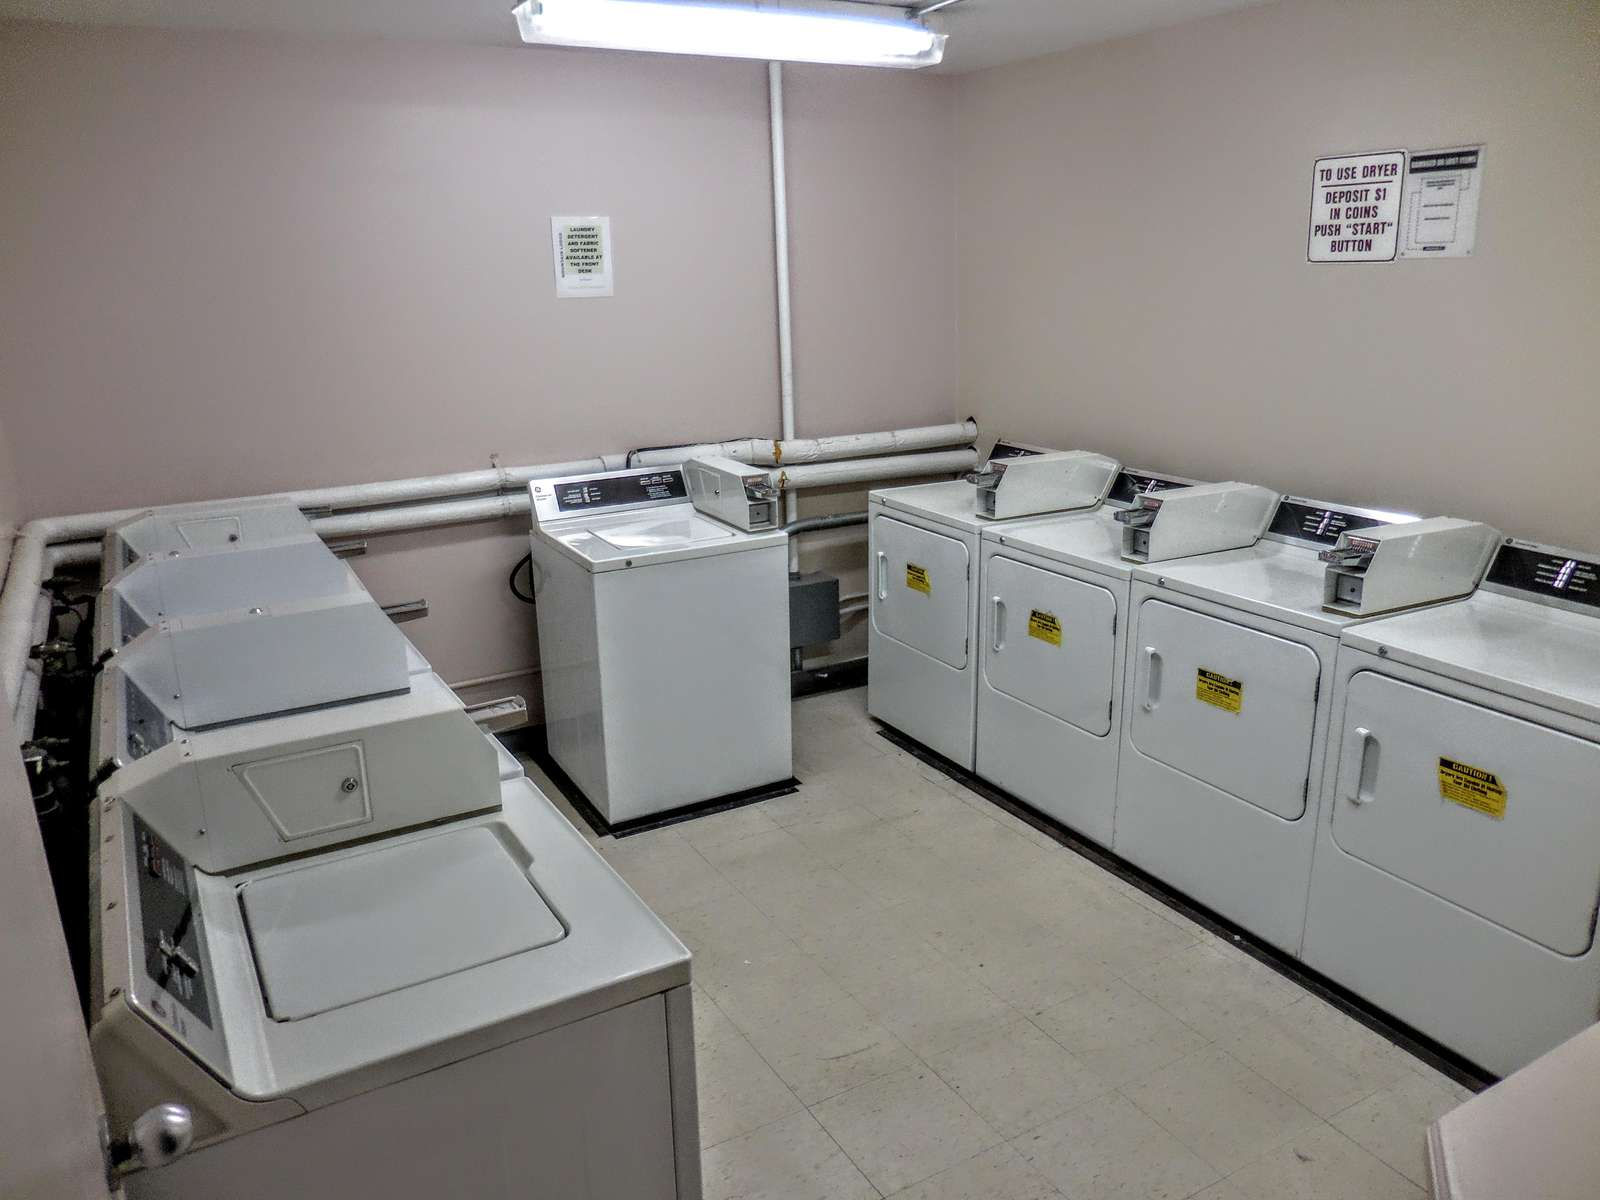 (COIN) Laundry facilities are down the hall from ML327